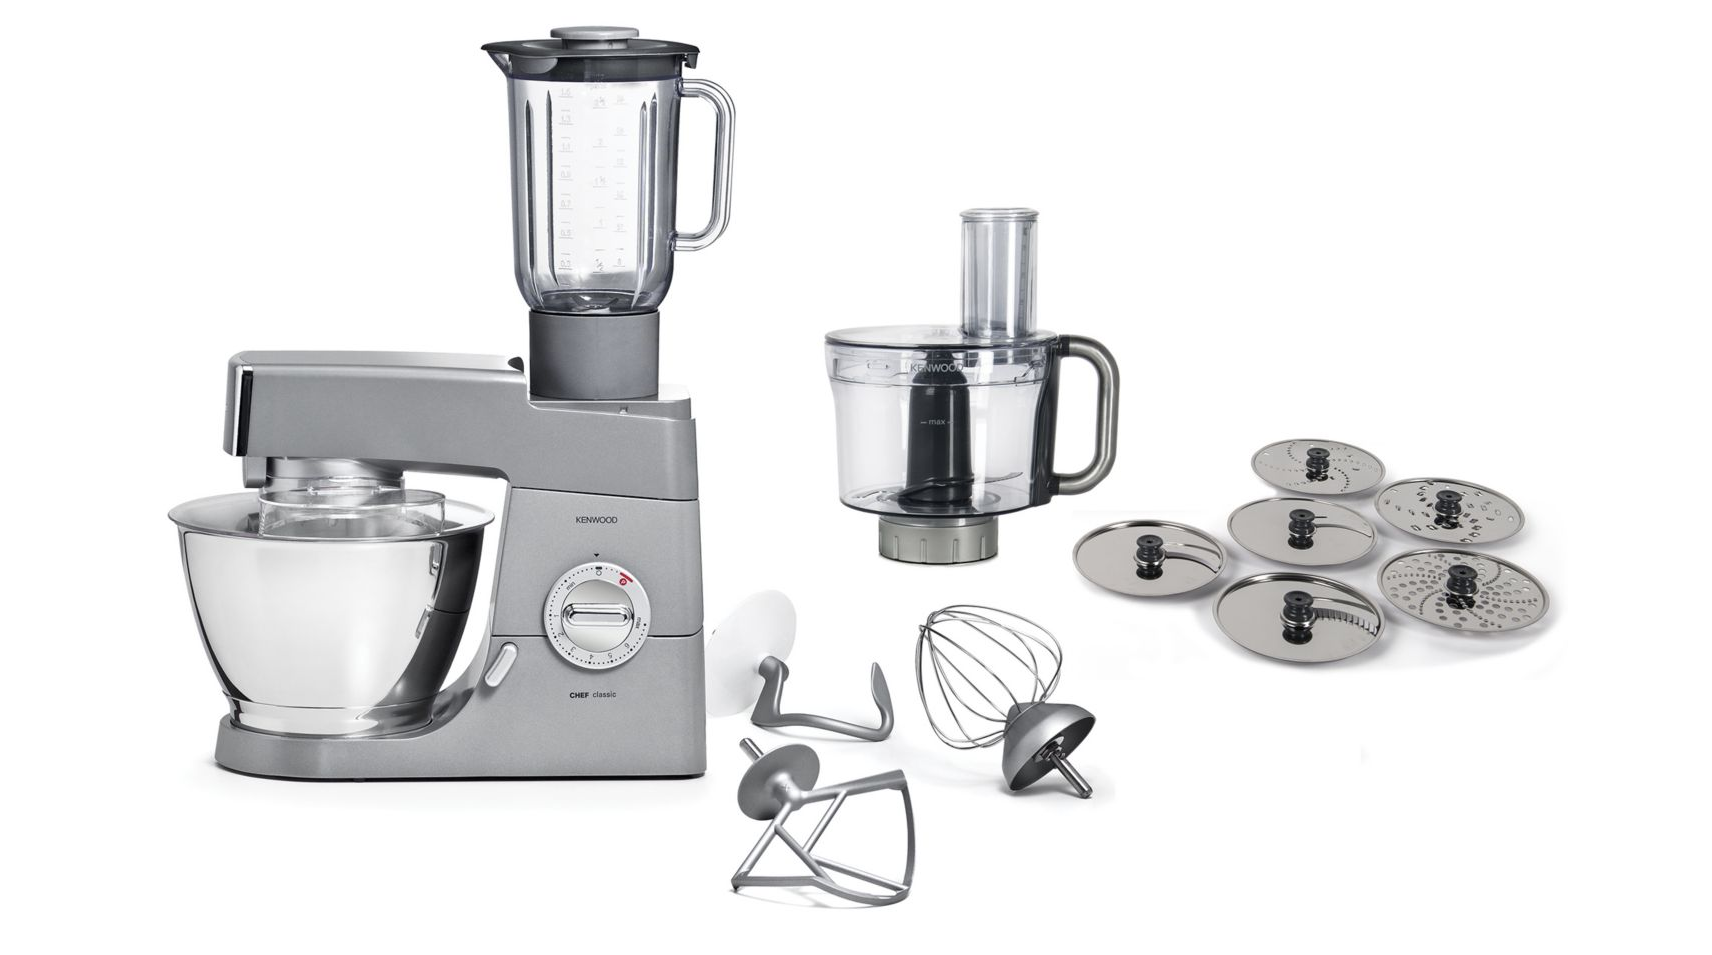 Comparatif Robot Patissier Kenwood Et Kitchenaid Robot Patissier Kenwood Km347pl Chef Bol Multifonction Kah647pl